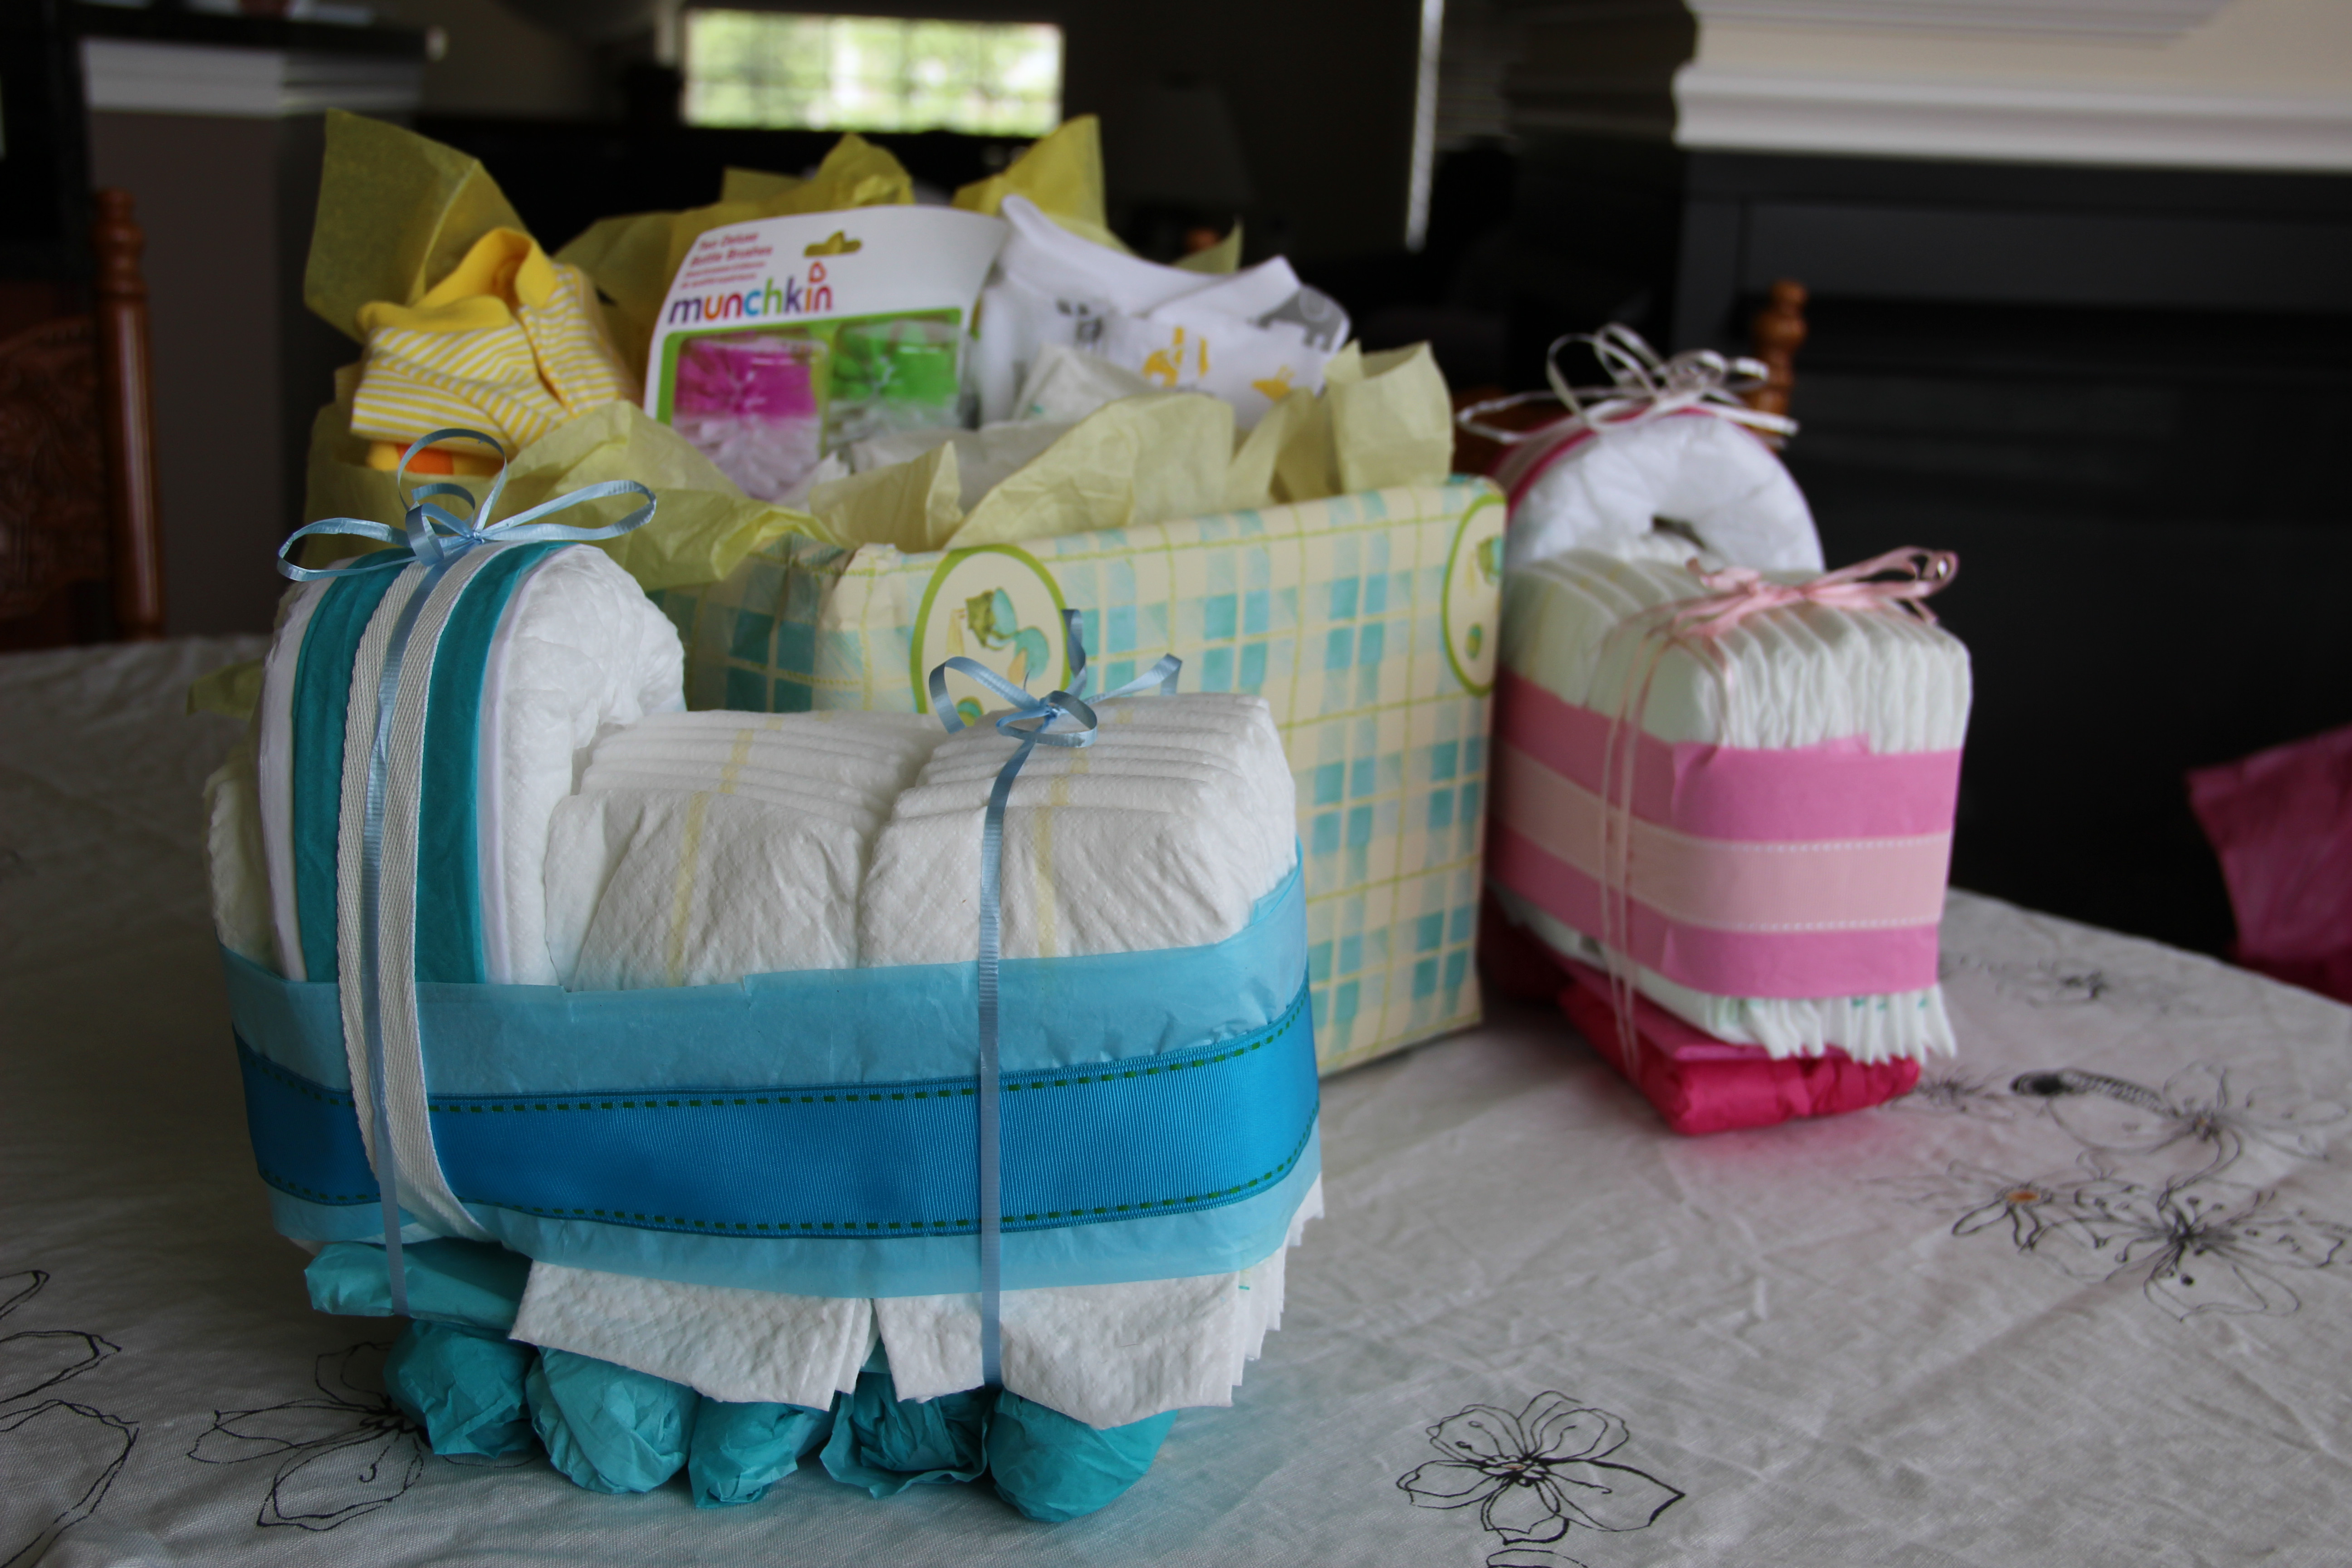 Best ideas about Boy Baby Shower Gift Ideas . Save or Pin The Importance of Being Cleveland Now.